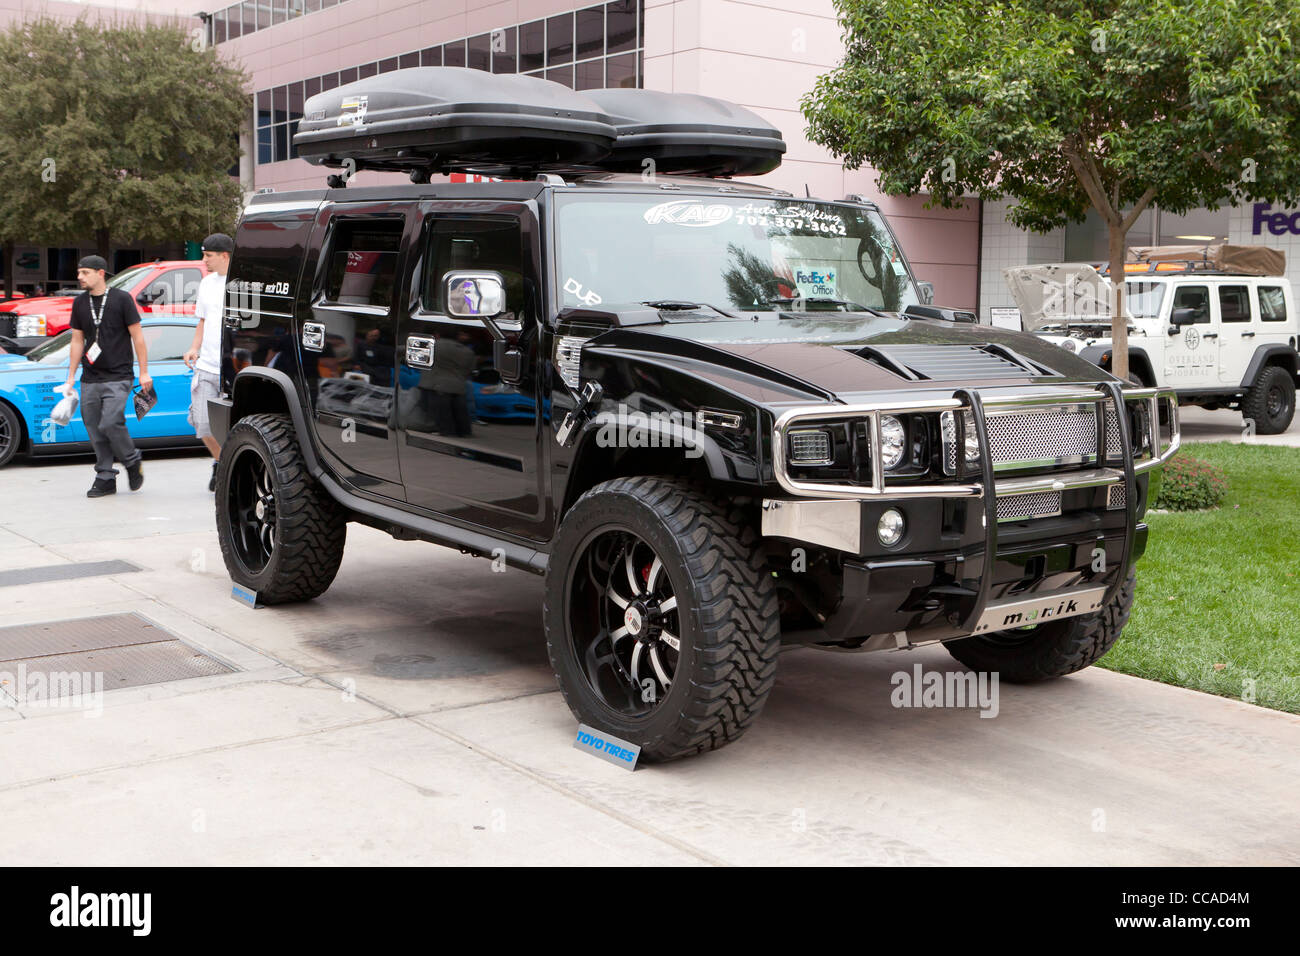 A restyled Hummer H2 - Stock Image